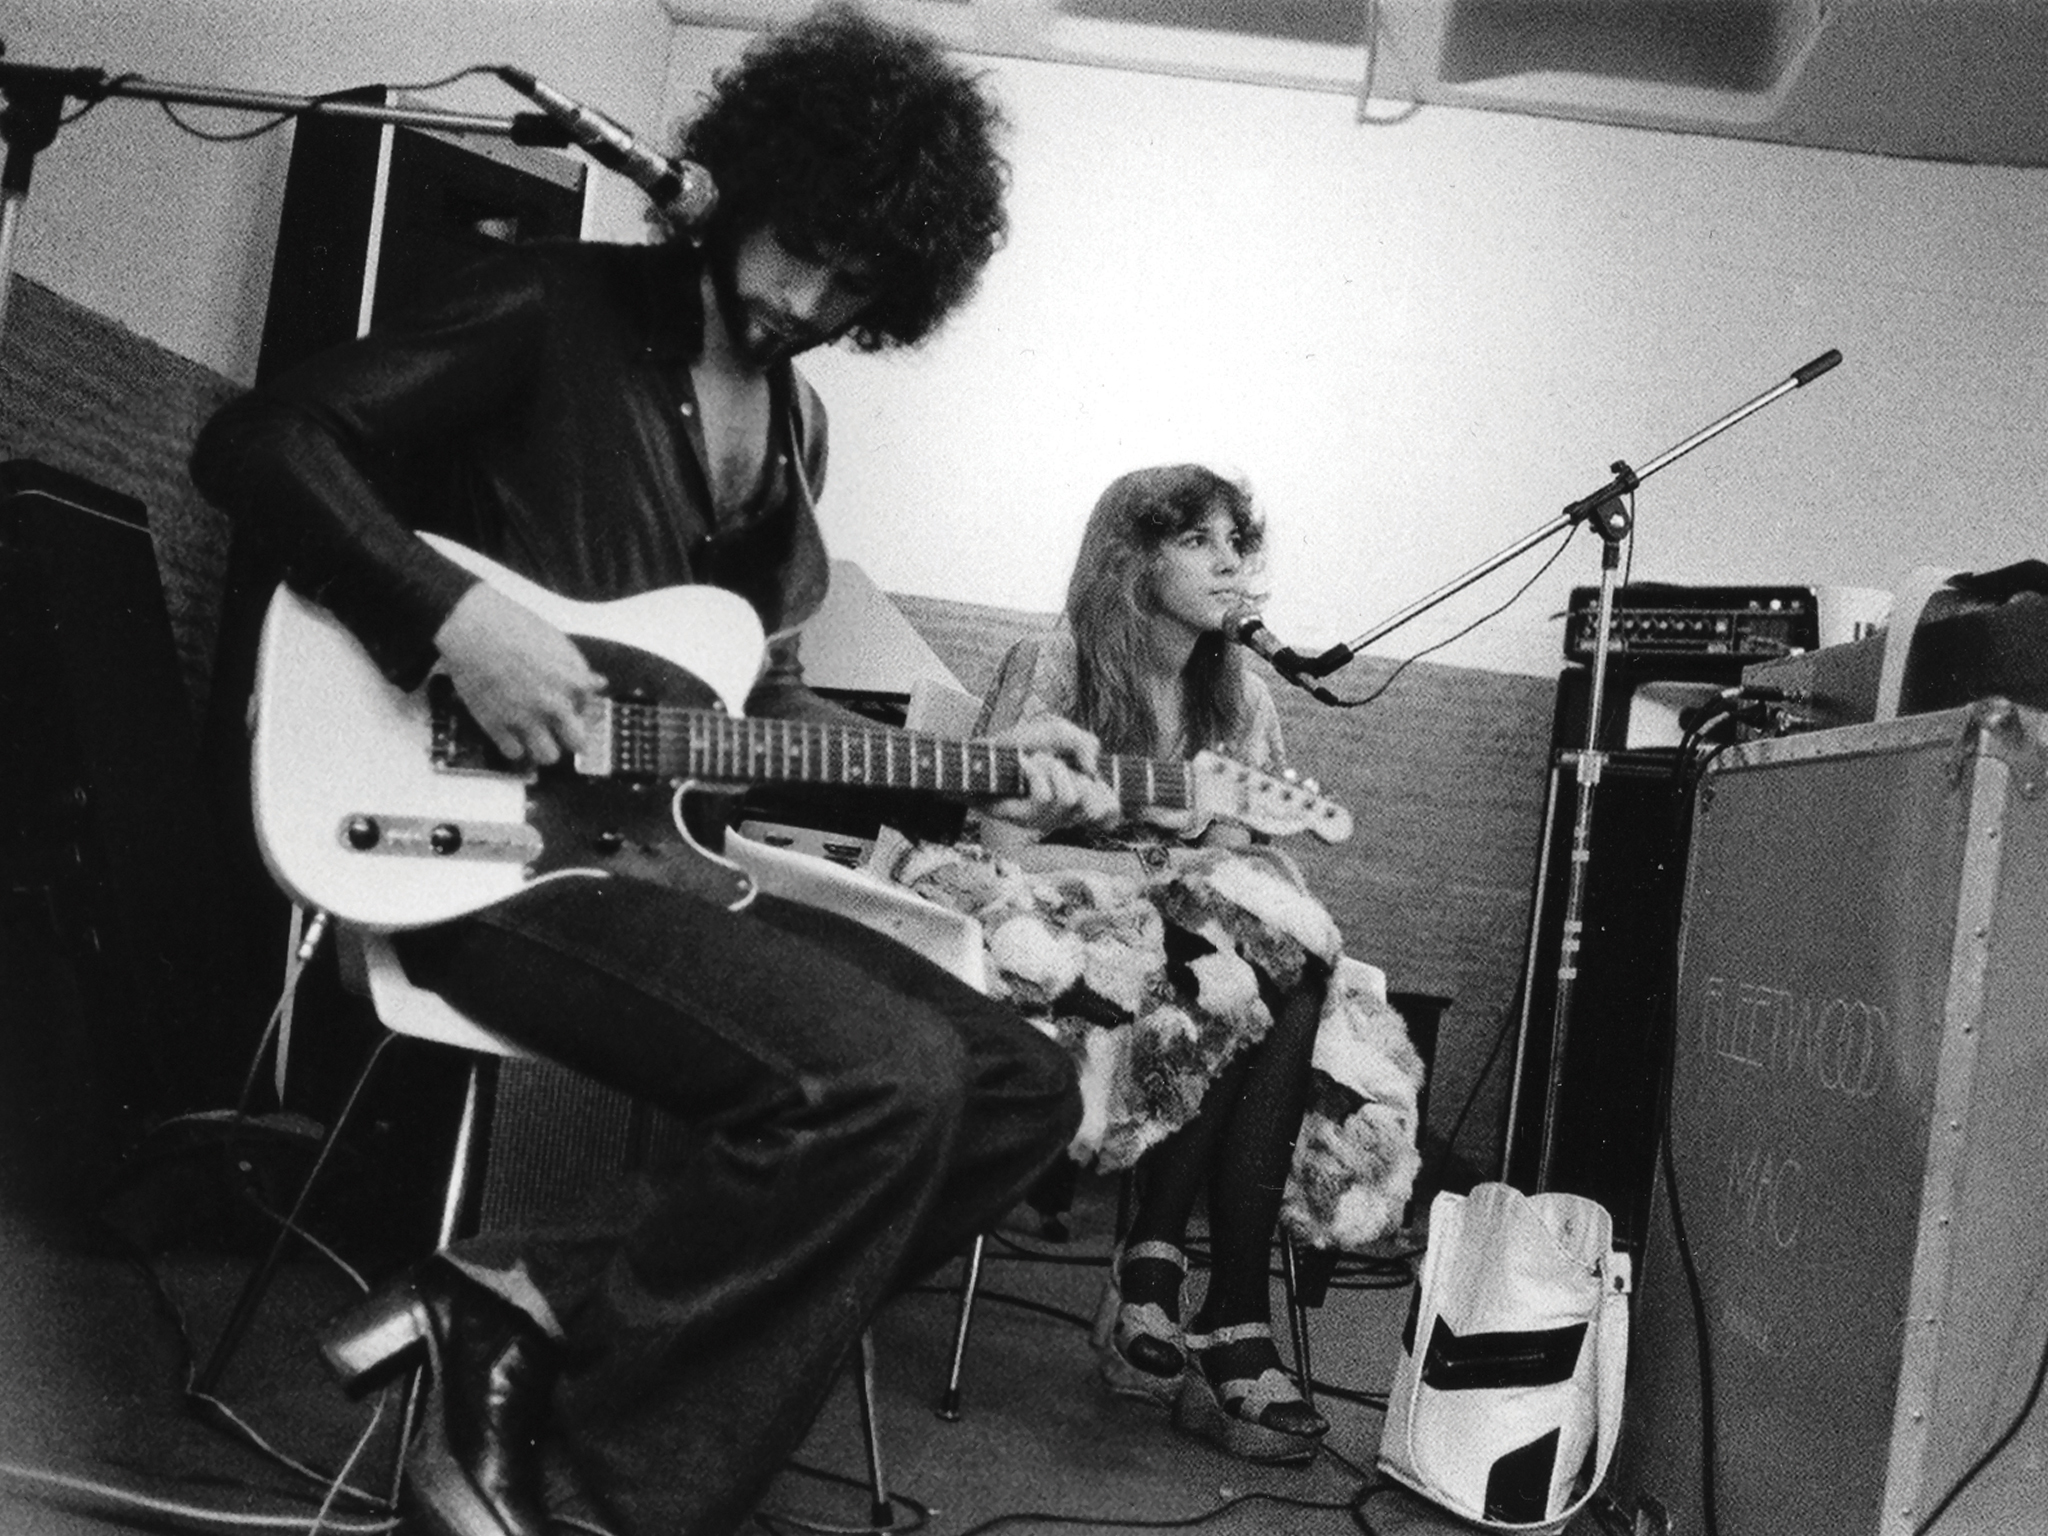 Lindsey Buckingham and Stevie Nicks of Fleetwood Mac